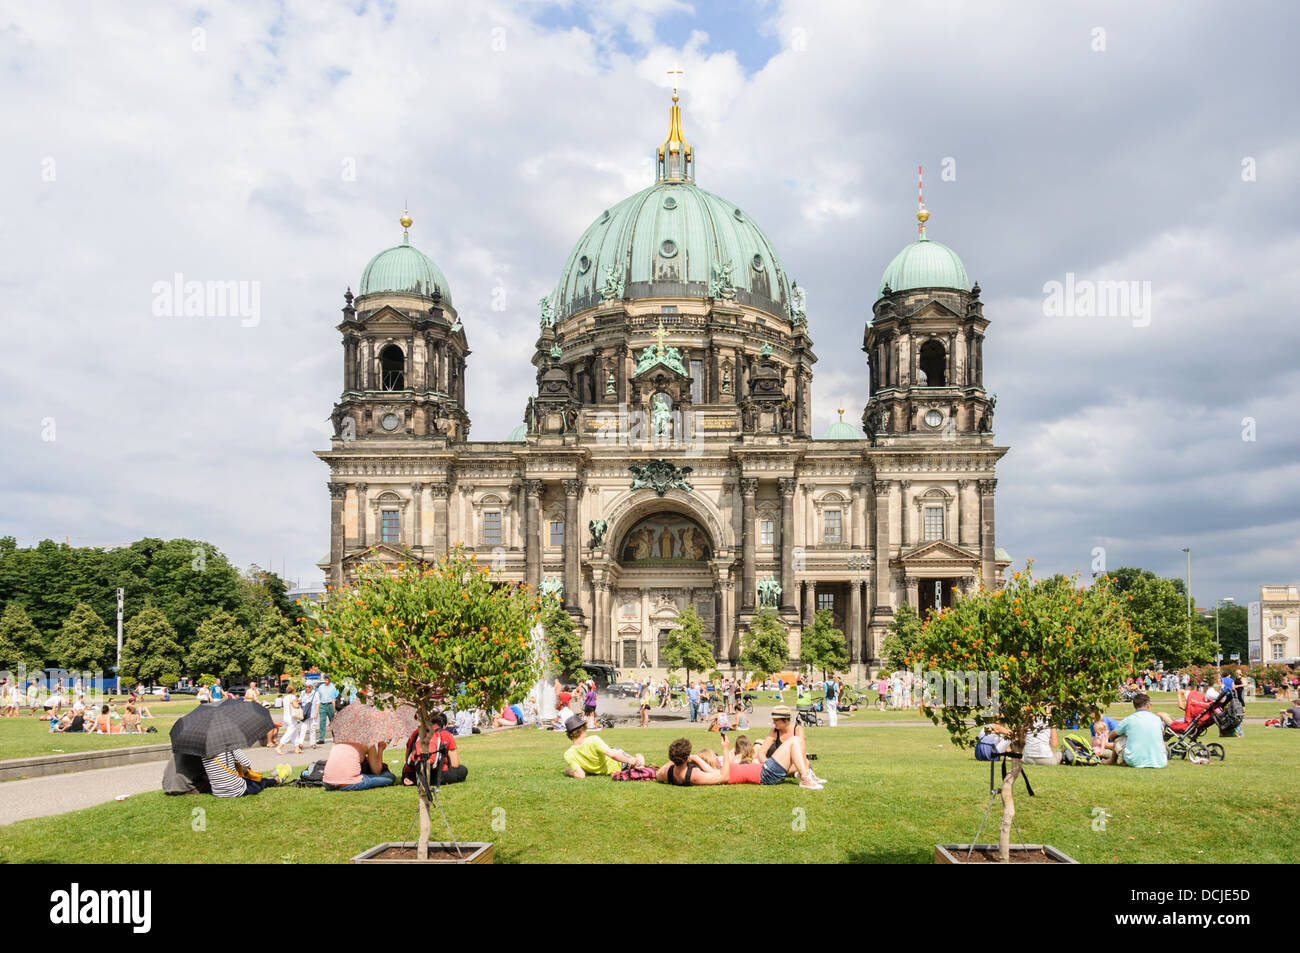 Young people and tourist enjoying summer in the city at the Berlin Cathedral - Berliner Dom - Berlin Germany Stock Photo